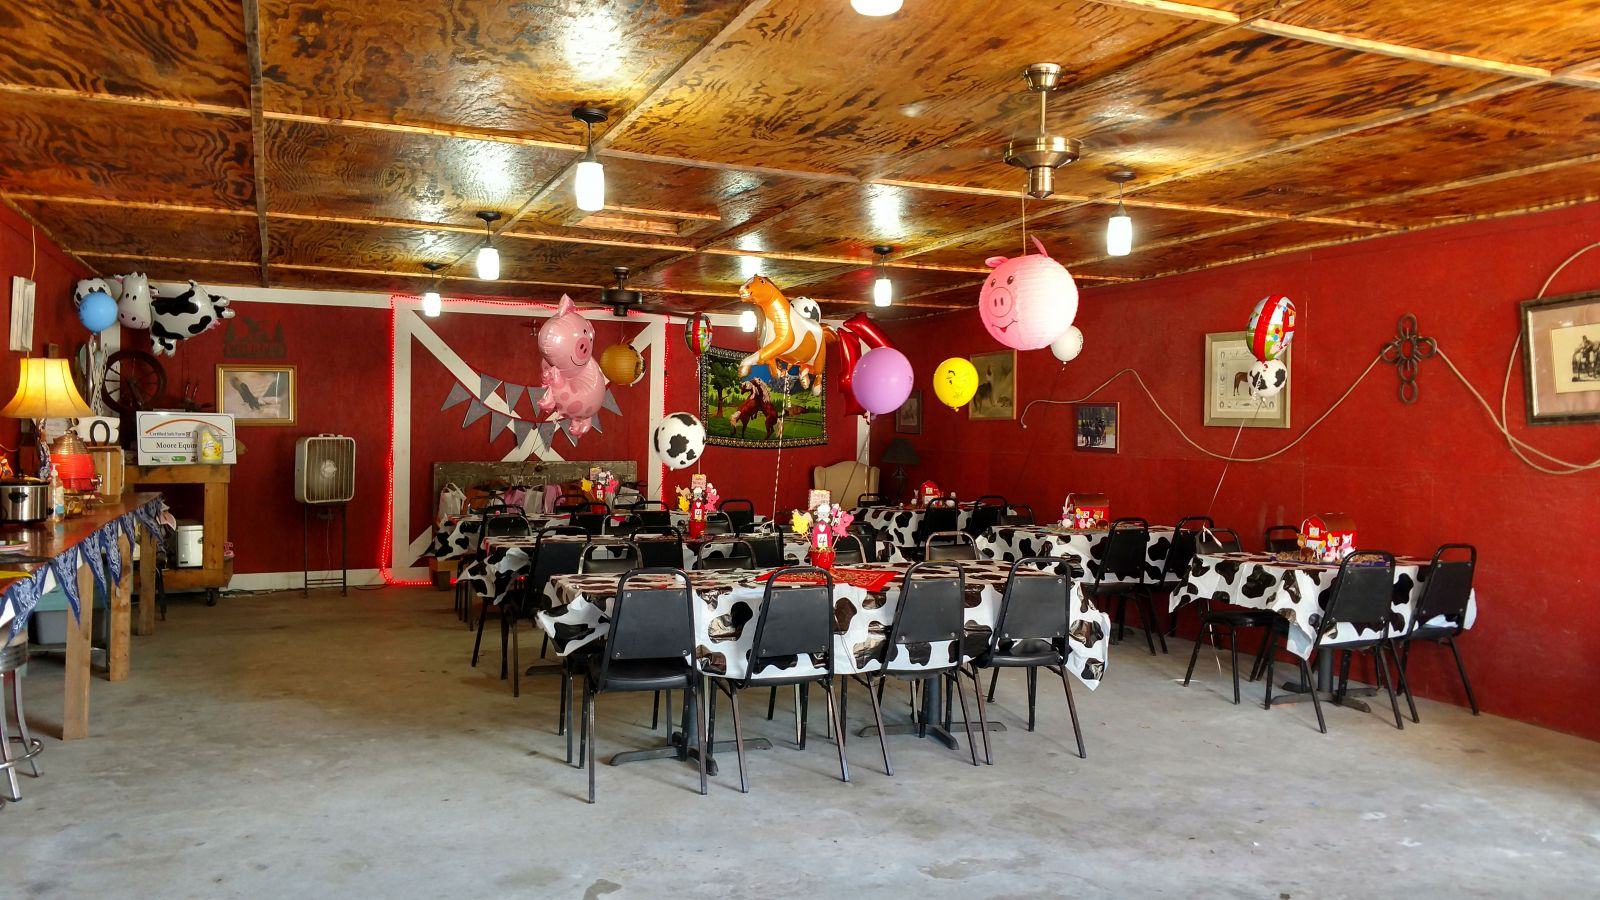 Place to rent for birthday party near me